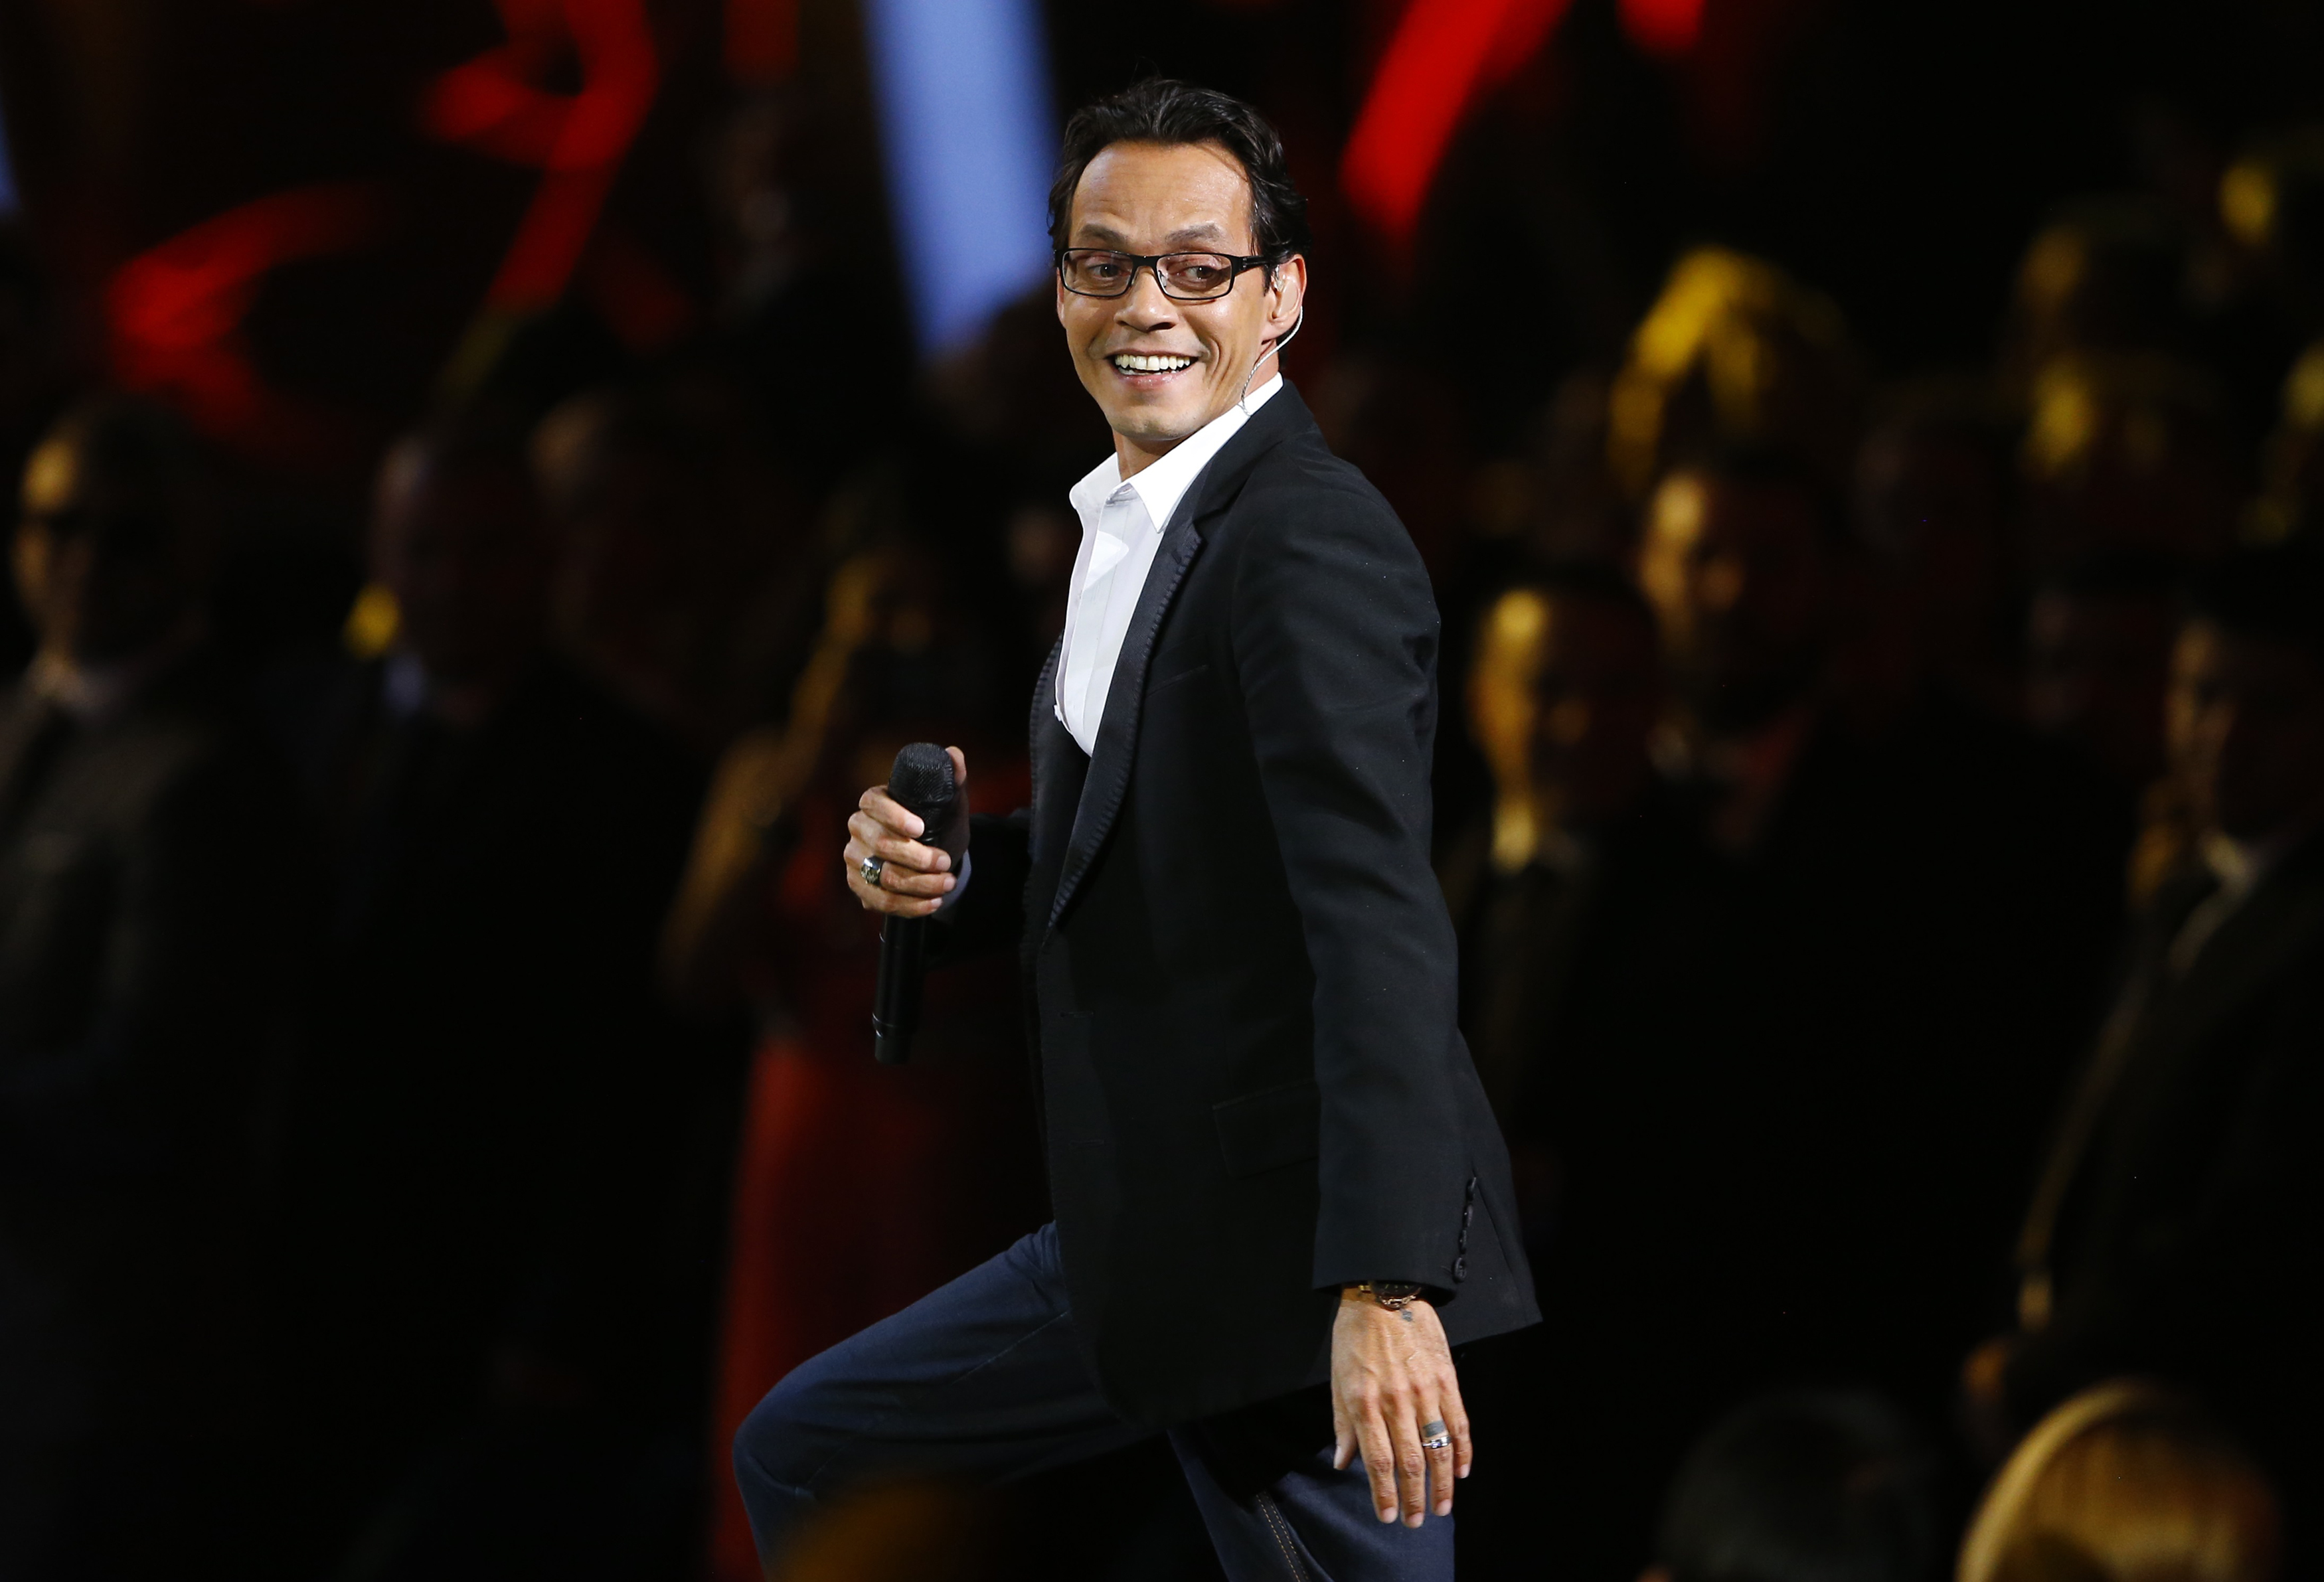 Marc Anthony Vs La India This Song Vivir Lo Nuestro Was Recorded With A Weird Chick That I Do Not Like